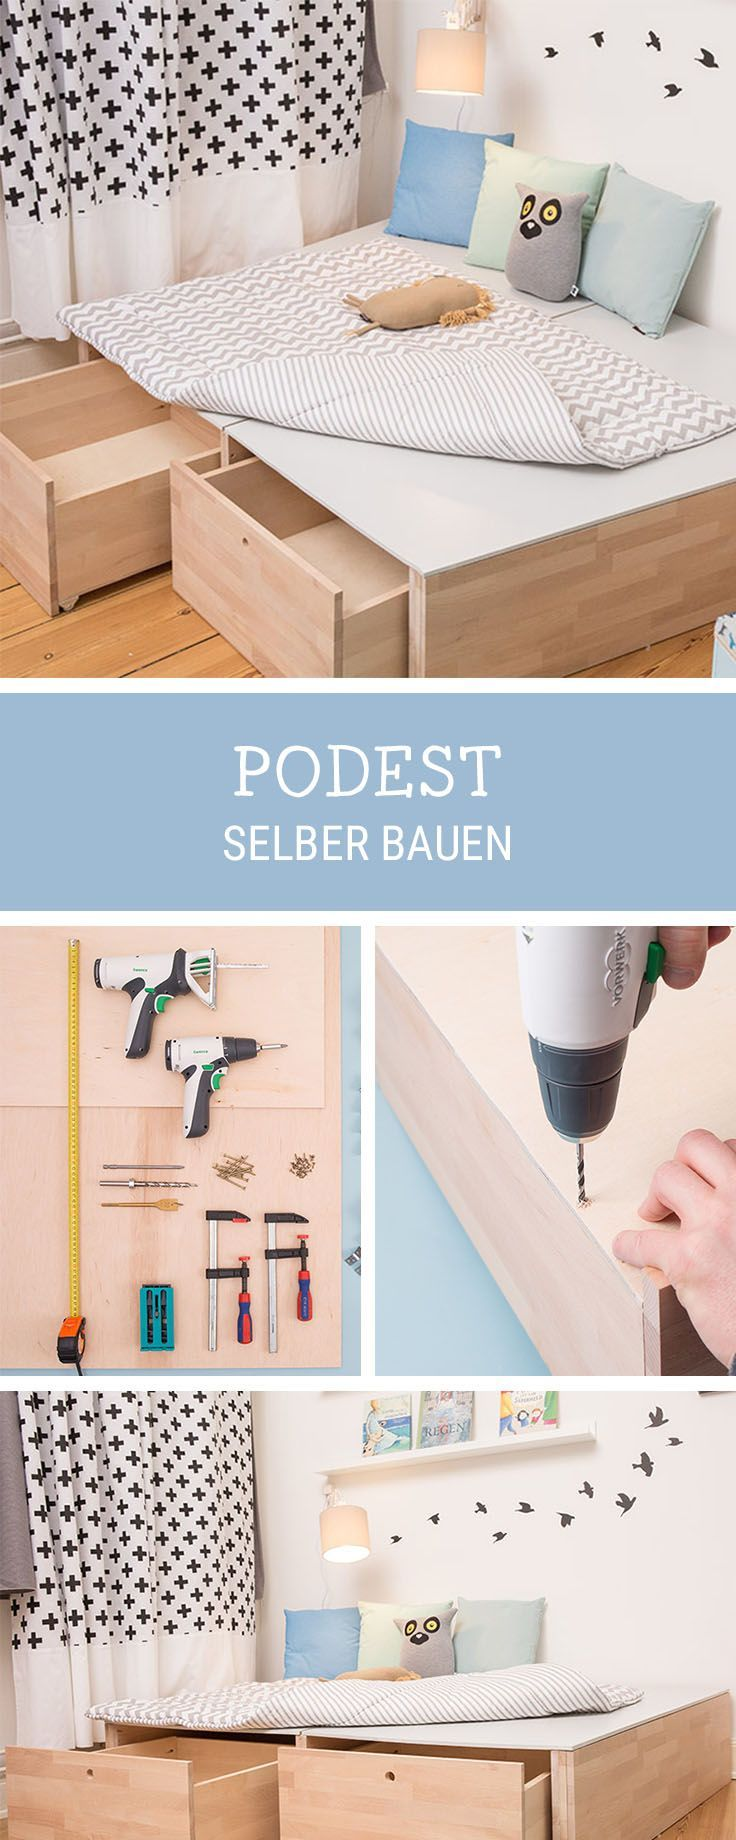 top 25 best selber bauen podest ideas on pinterest selber bauen podestbett podestbett and im. Black Bedroom Furniture Sets. Home Design Ideas